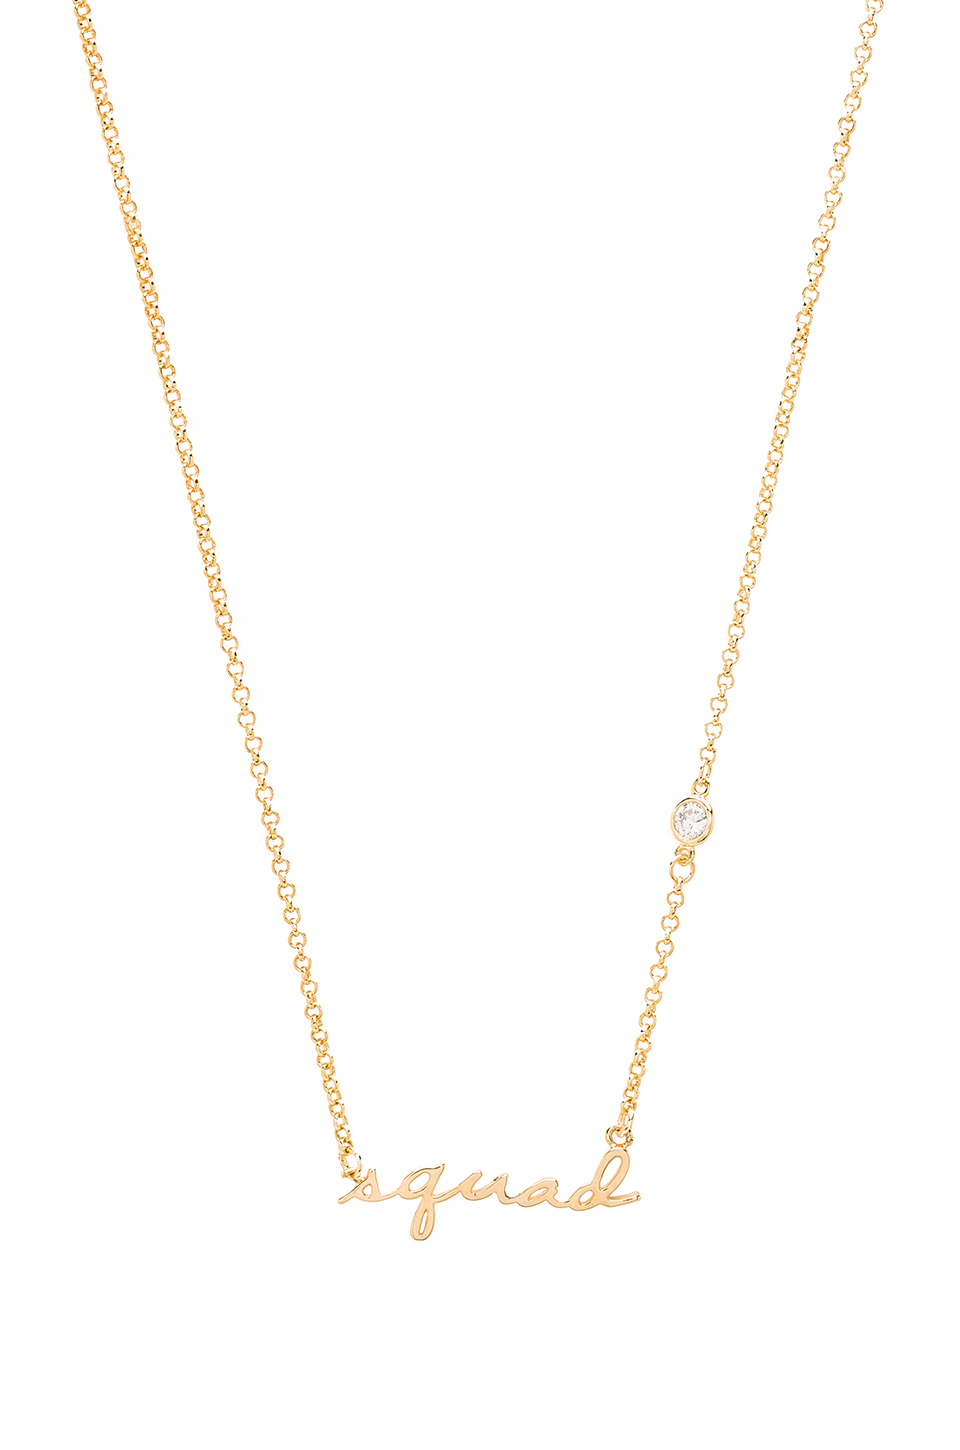 SQUAD NECKLACE - $69